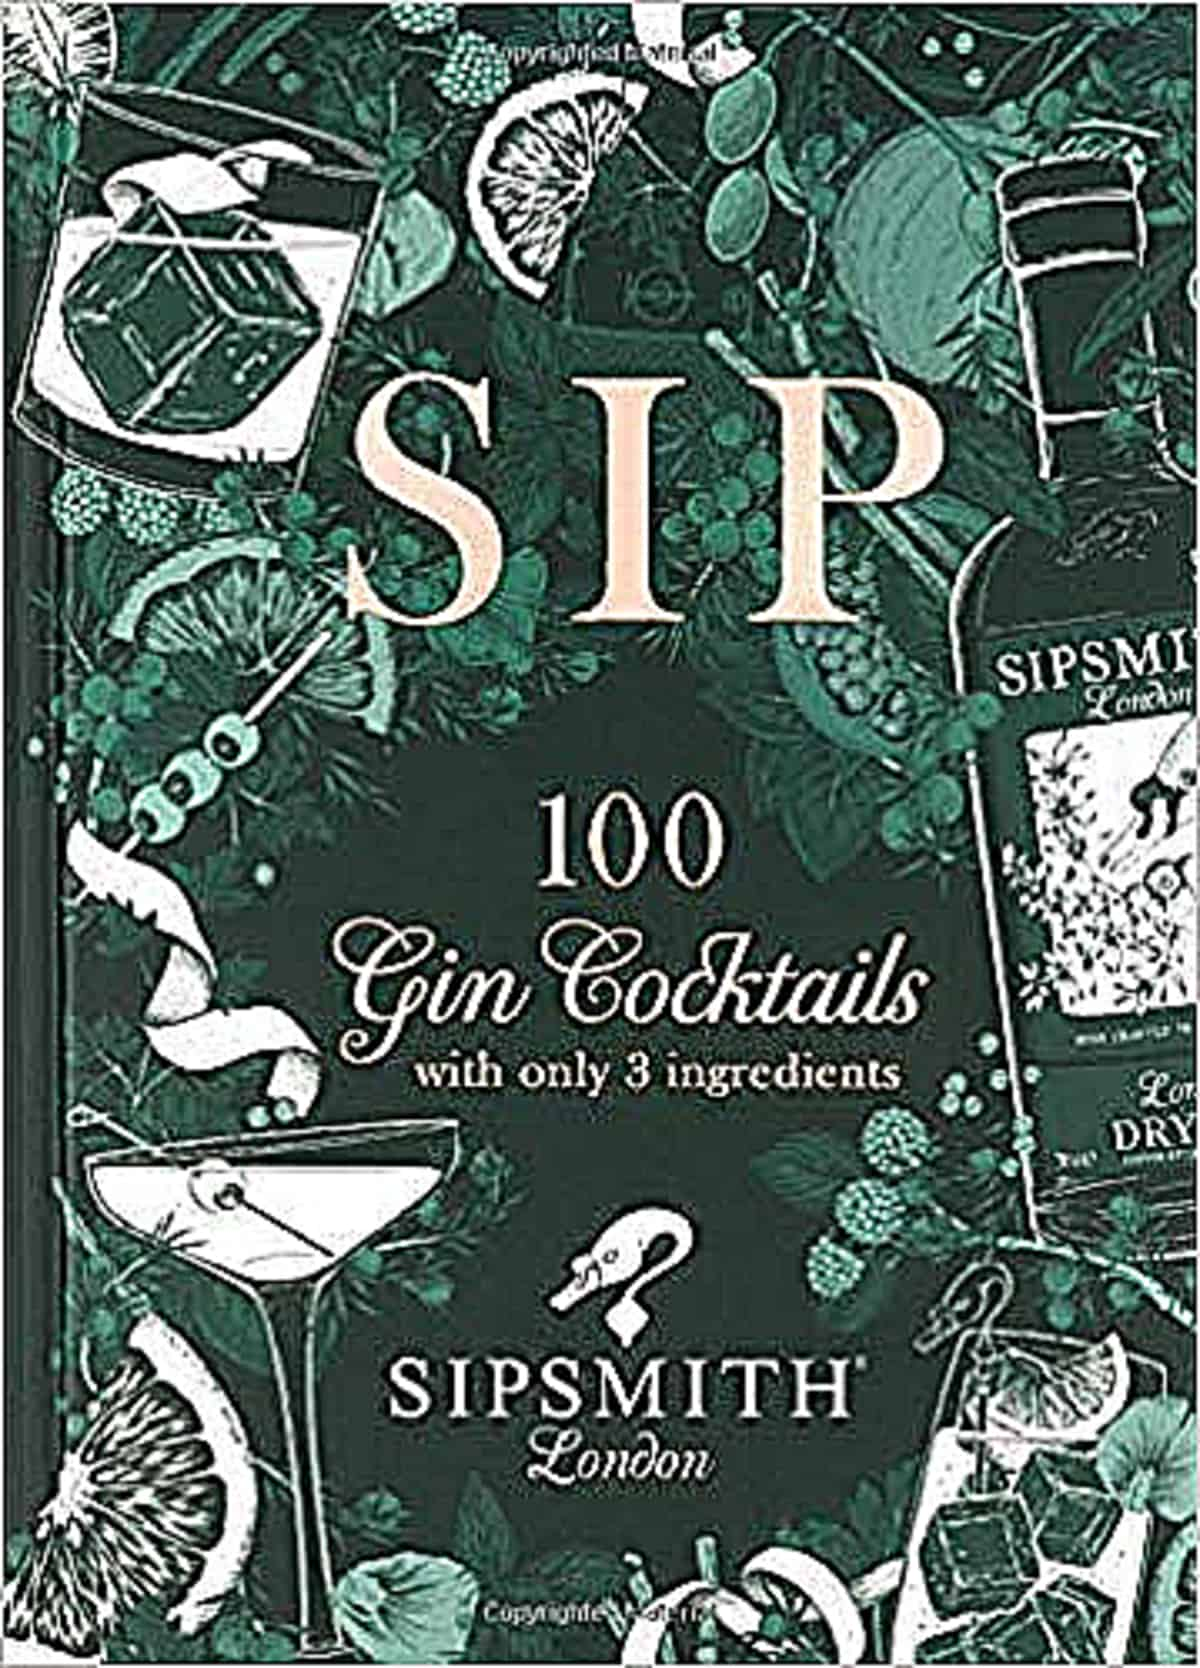 This is the perfect book for someone who isn't keen on lengthy recipes. Pic credit: Mitchell Beazley.